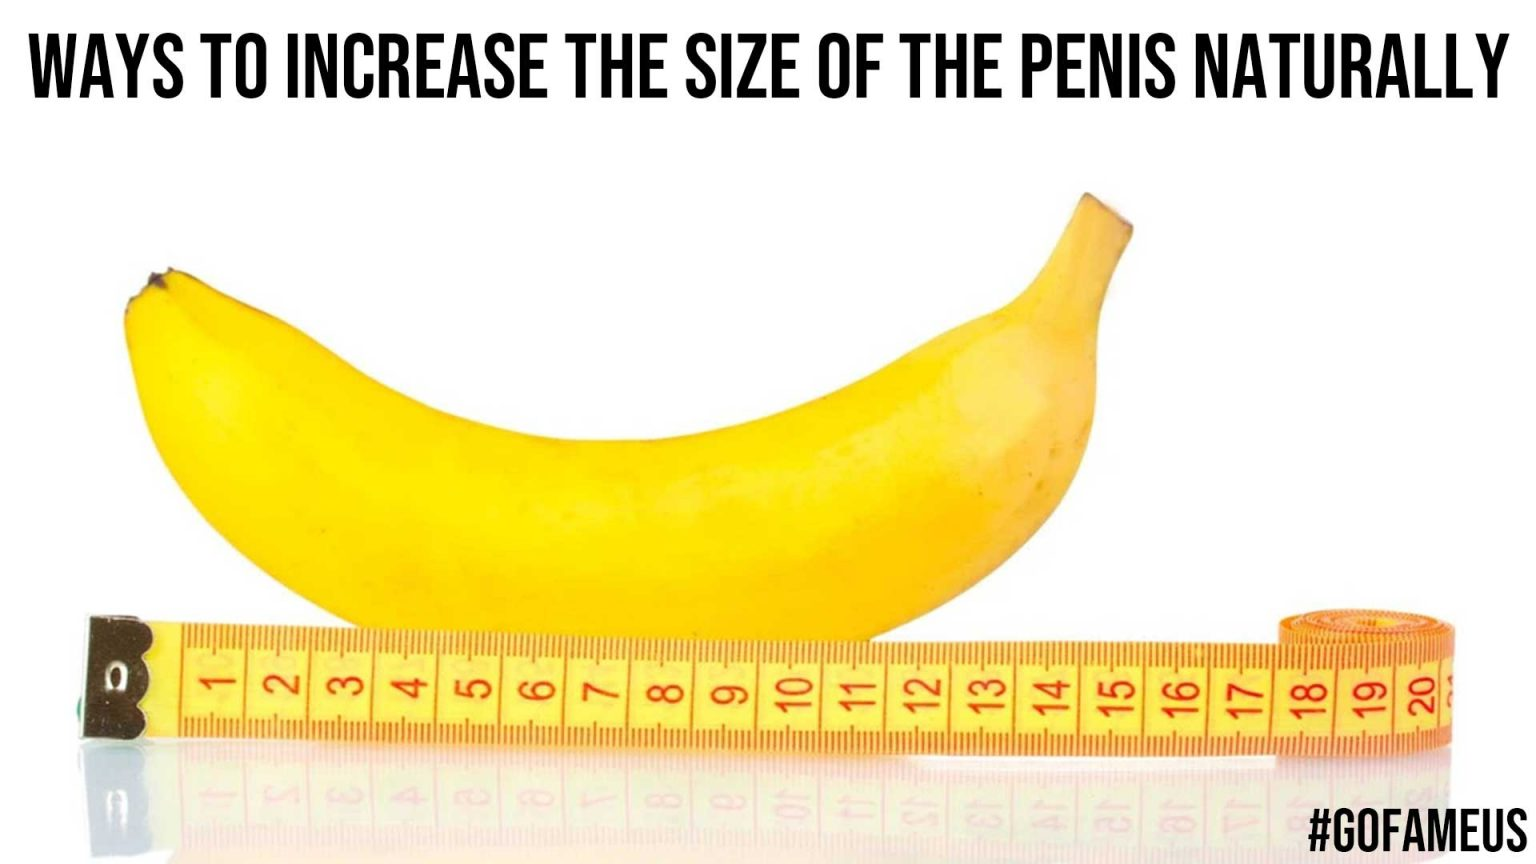 Ways to Increase the Size of the Penis Naturally - GoFameUs